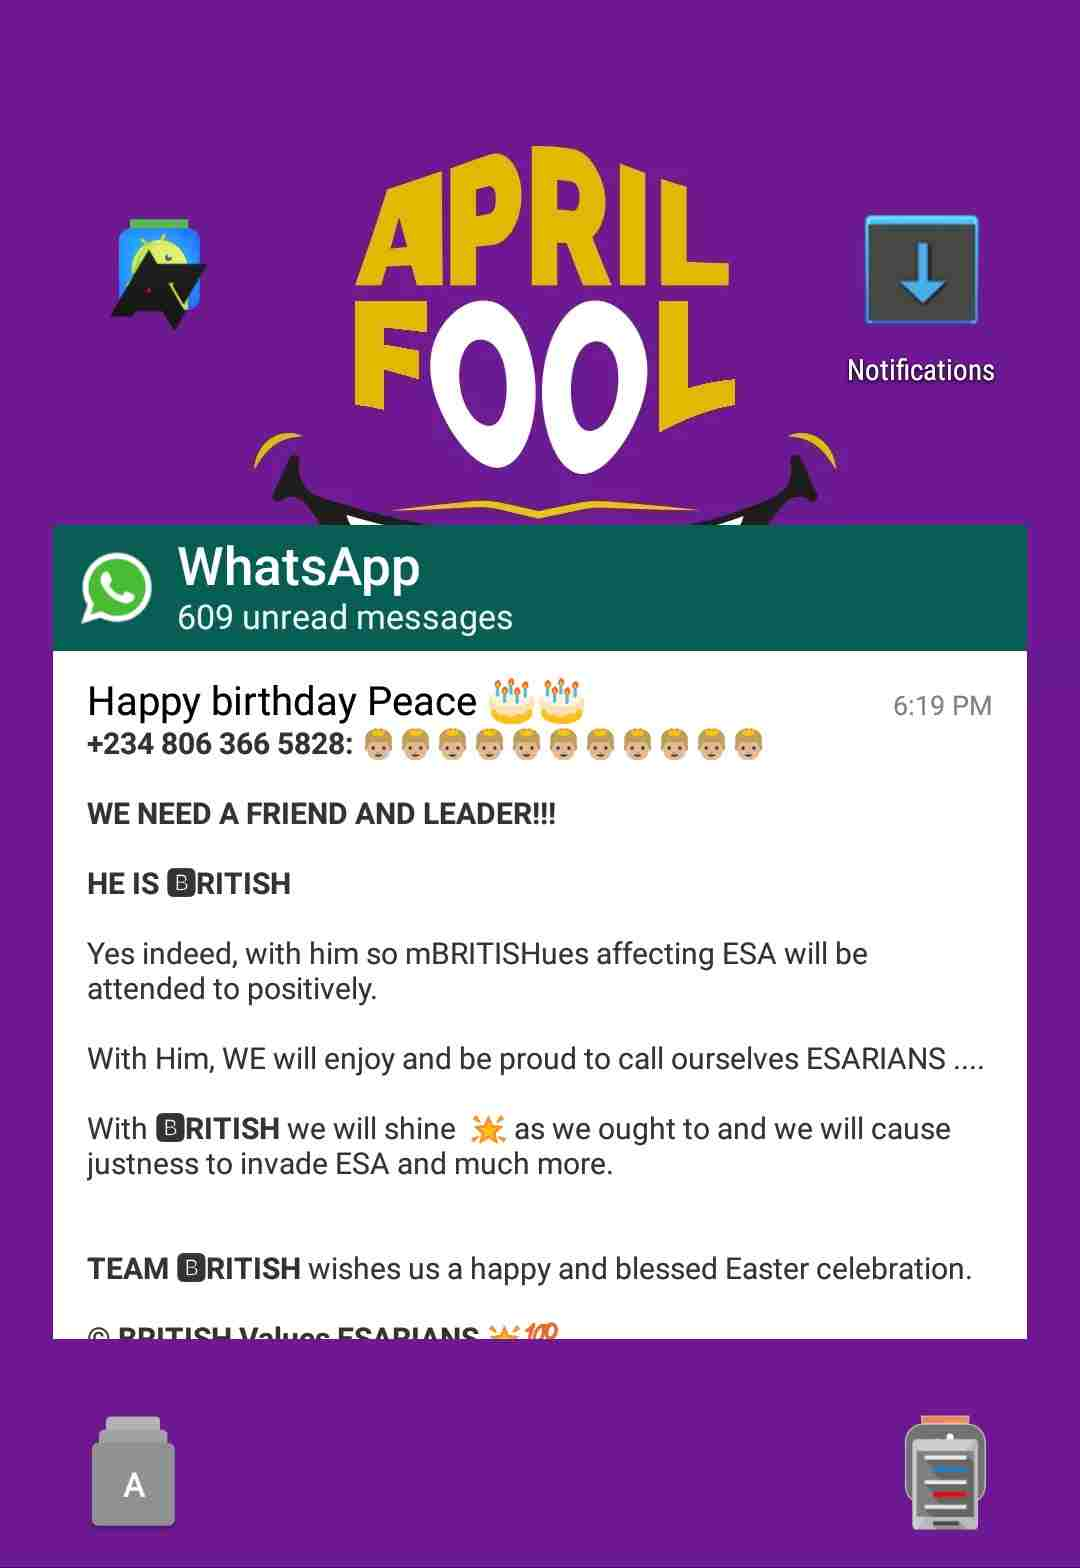 whatsapp tricks 101 - how to add whatsapp recent chats widget to your phone's home screen